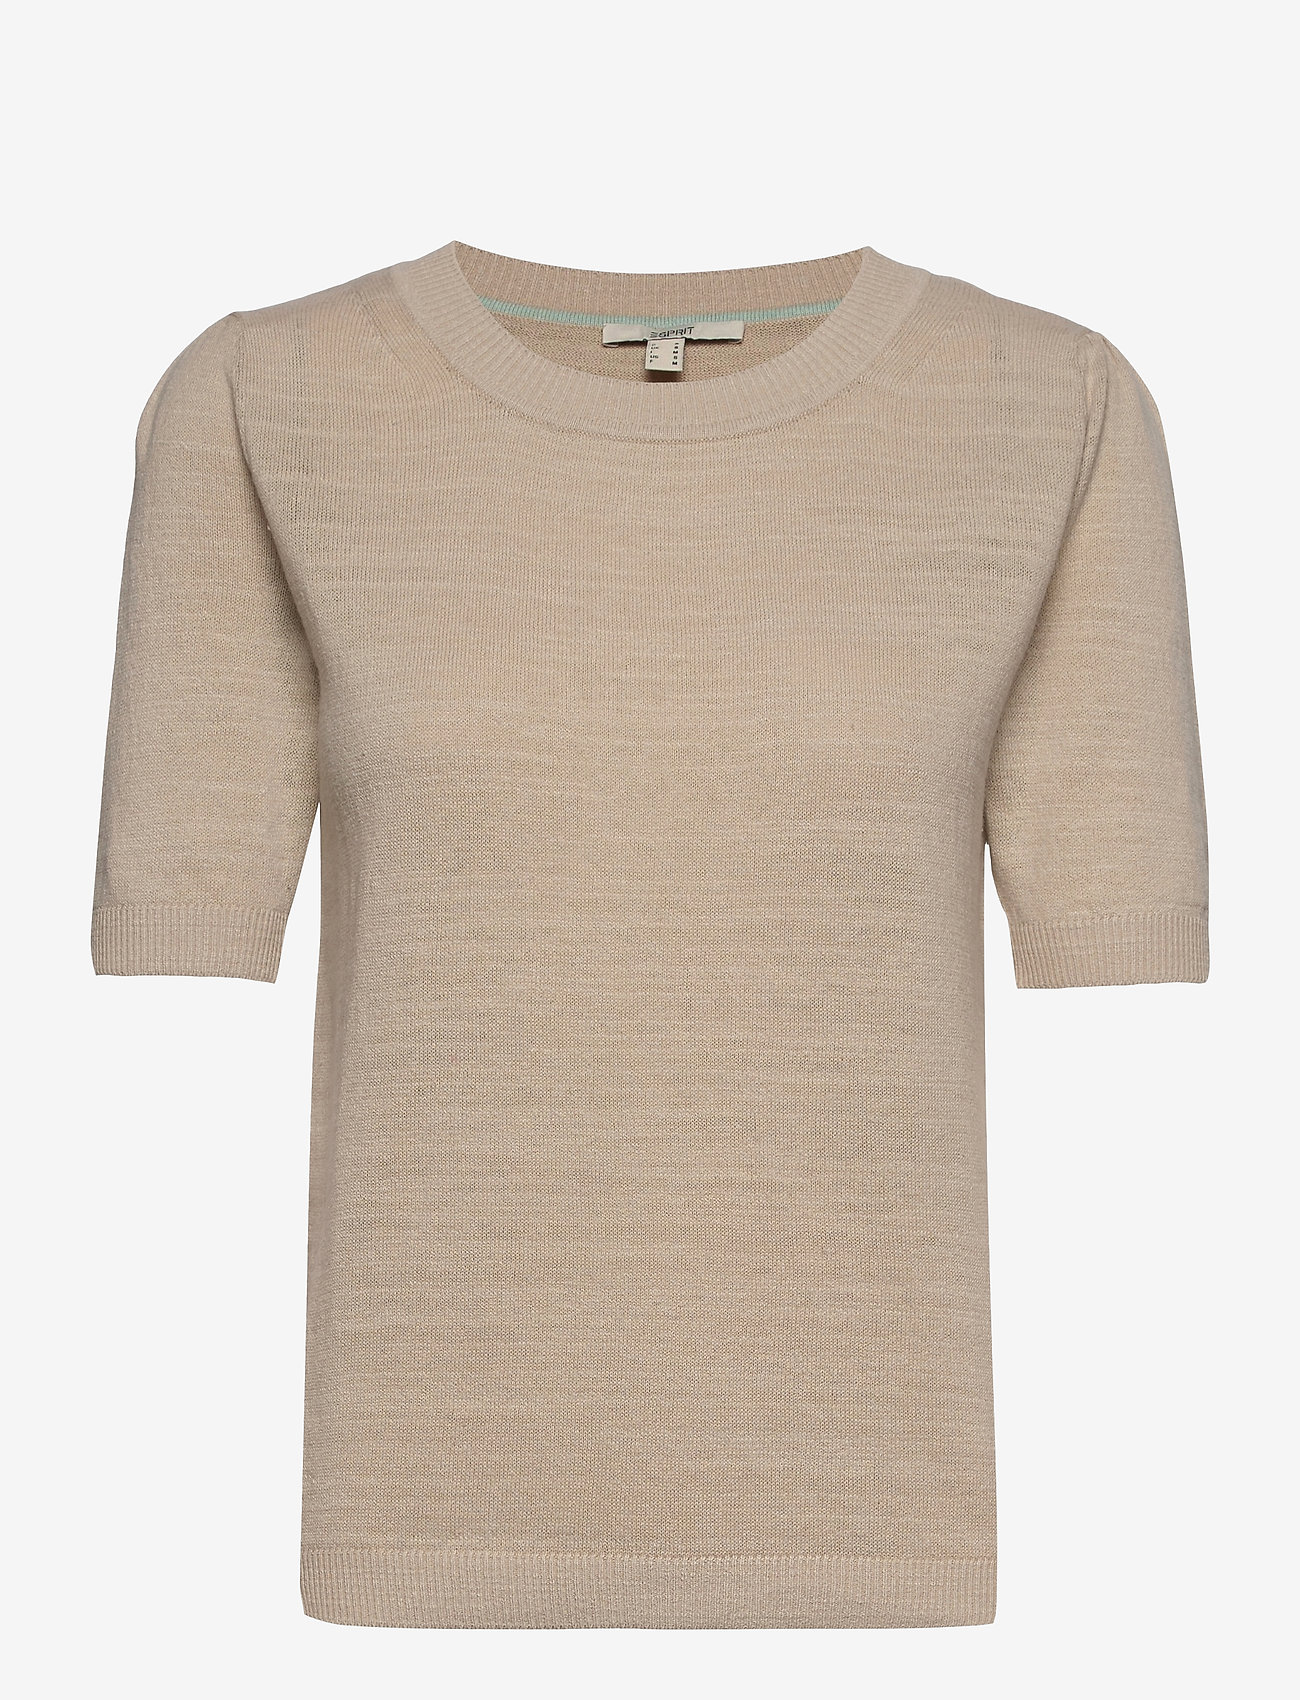 Esprit Casual - Sweaters - strikkede toppe - sand 5 - 0